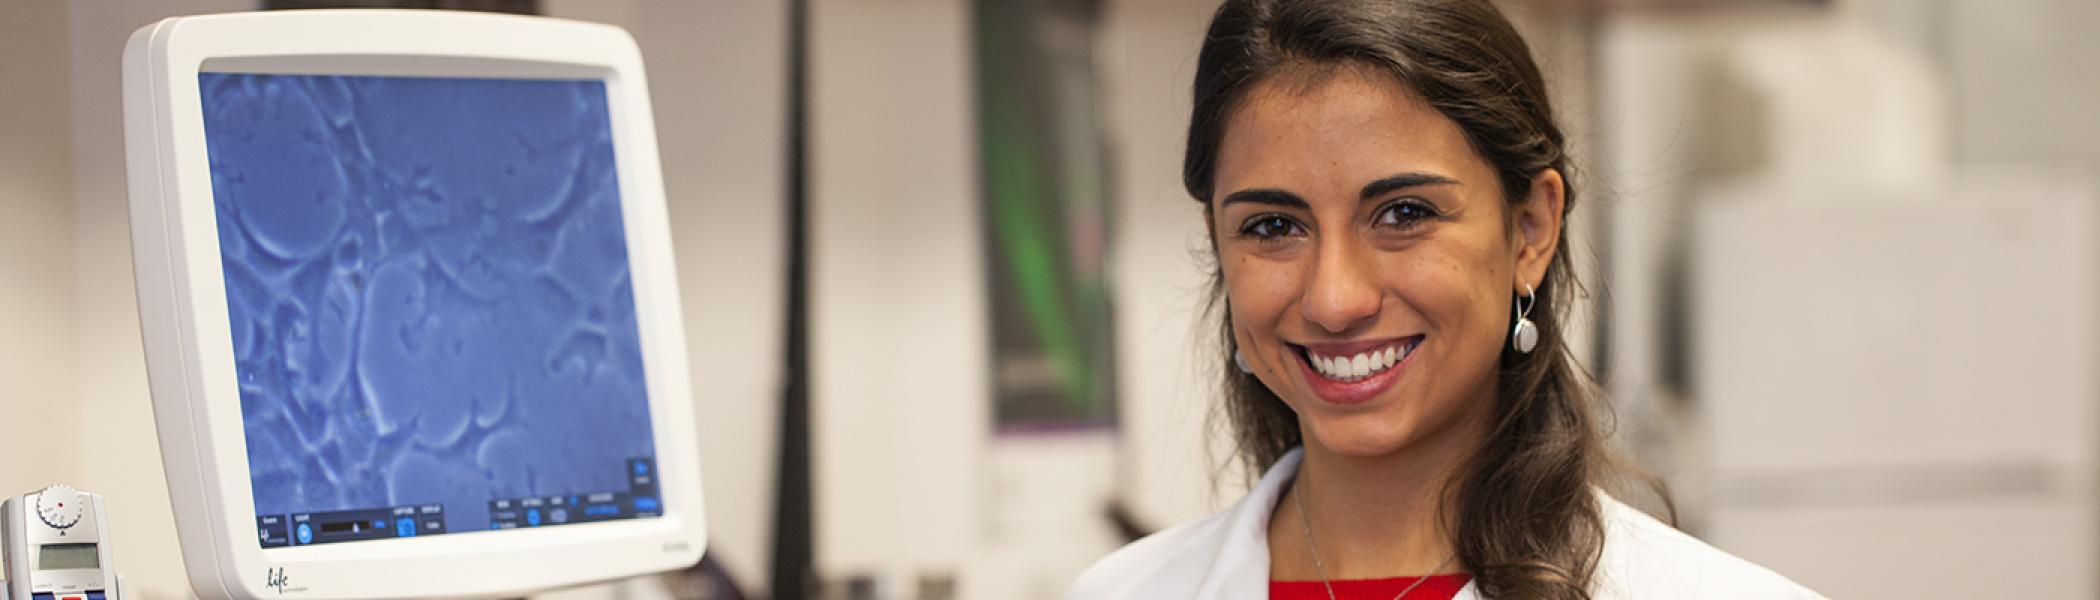 Andressa Lacerda smiling at the camera in a research lab, wearing a whiet lab coat, smiling at the camera